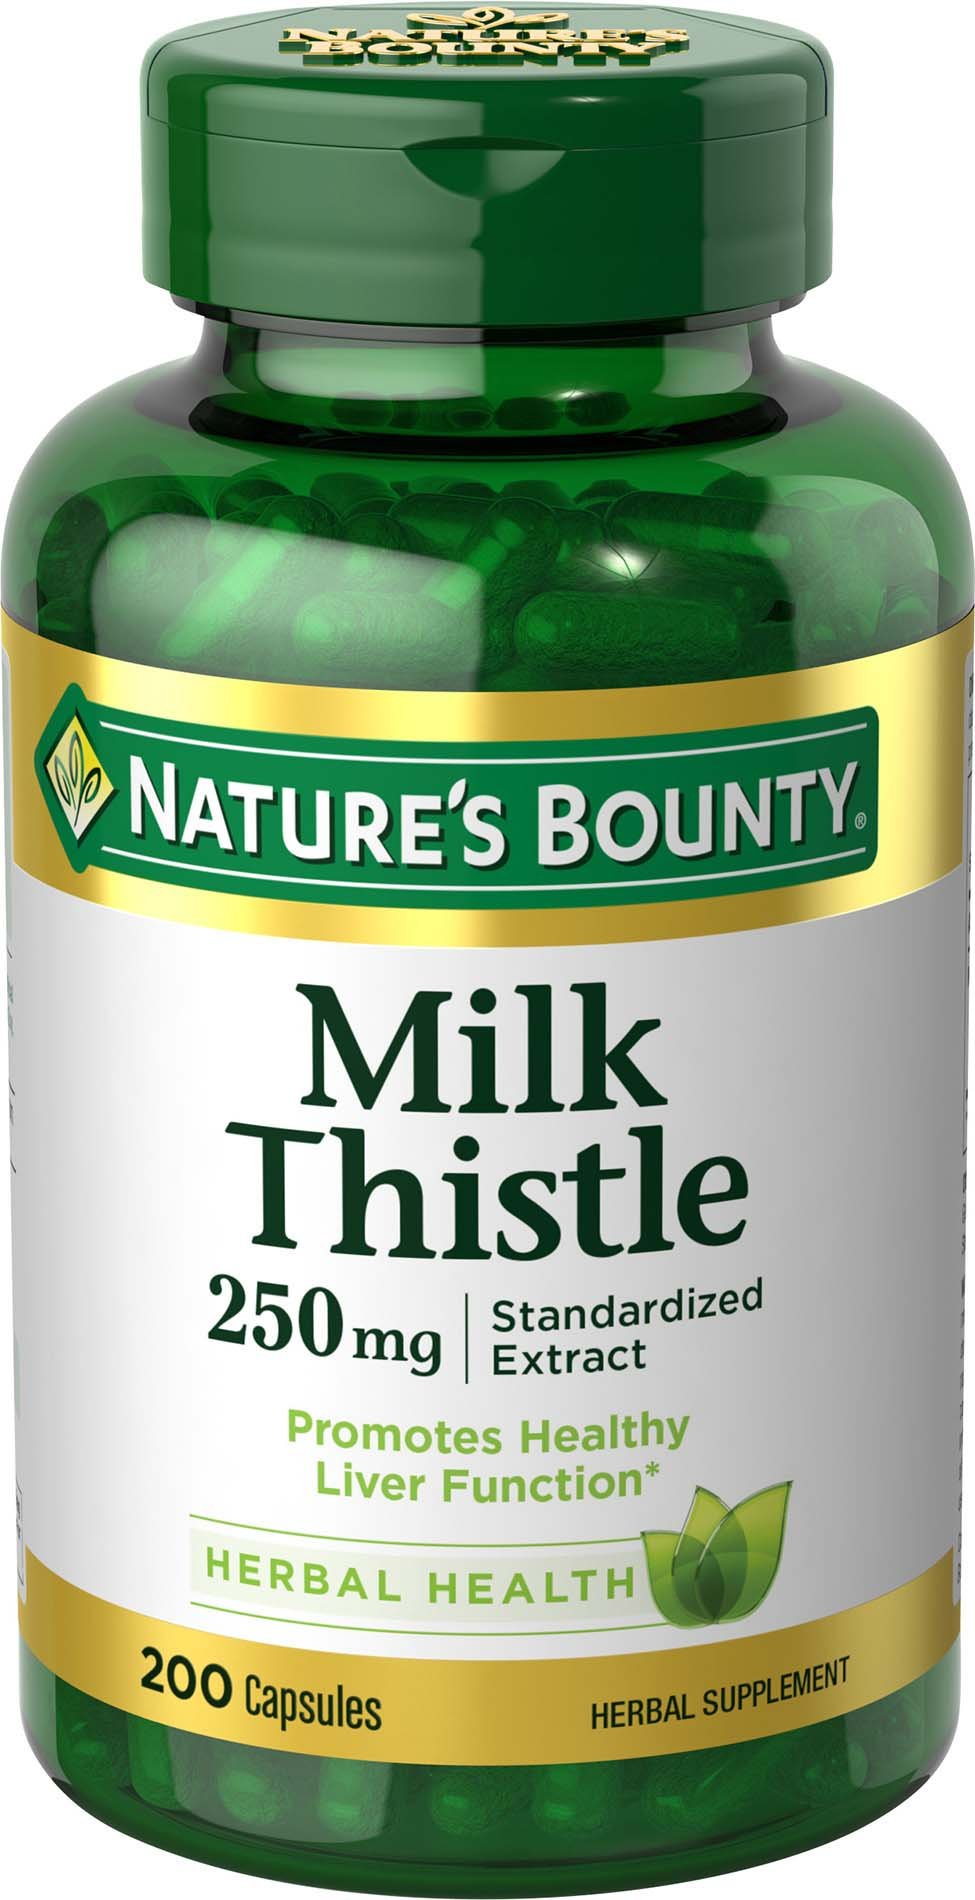 Nature's Bounty Milk Thistle Pills and Herbal Health Supplement, Supports Liver Health, 250mg, 200 Capsules